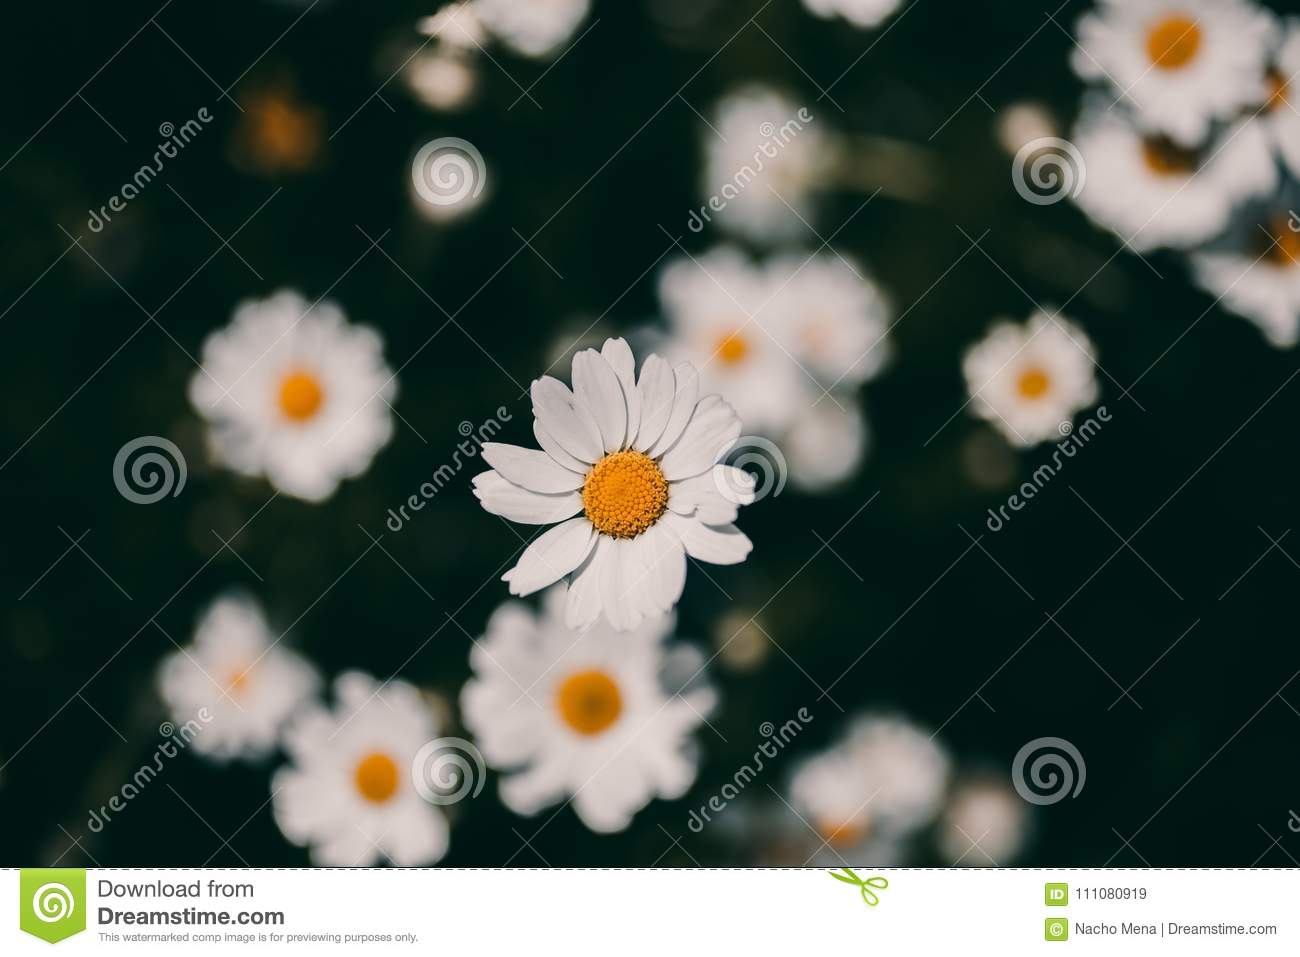 Daisies vintage background closeup of daisy flower in vintage style download daisies vintage background closeup of daisy flower in vintage style somber daisy flowers izmirmasajfo